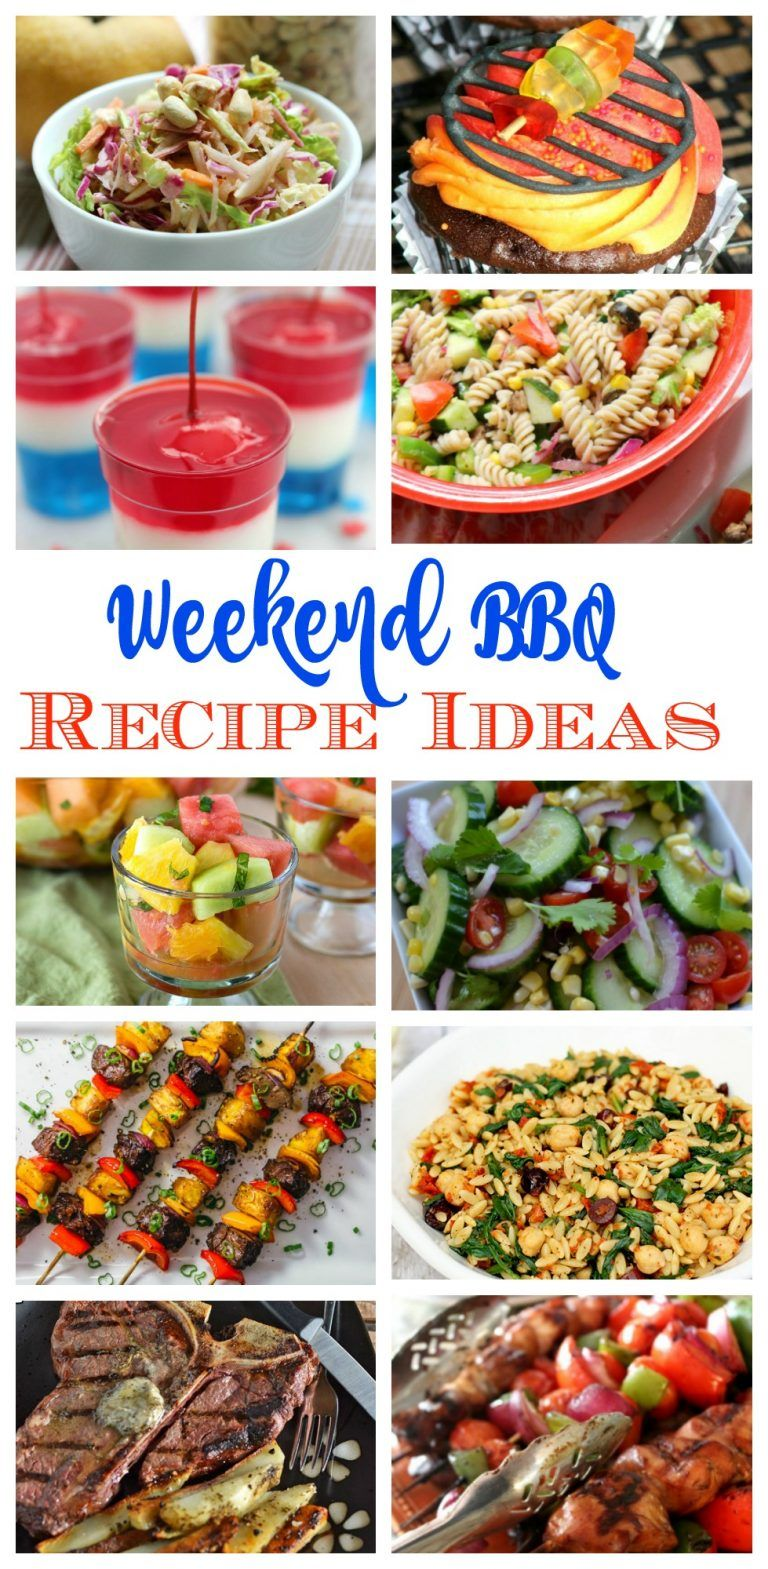 Weekend Barbecue Recipe Ideas Recipes For The Perfect Memorable